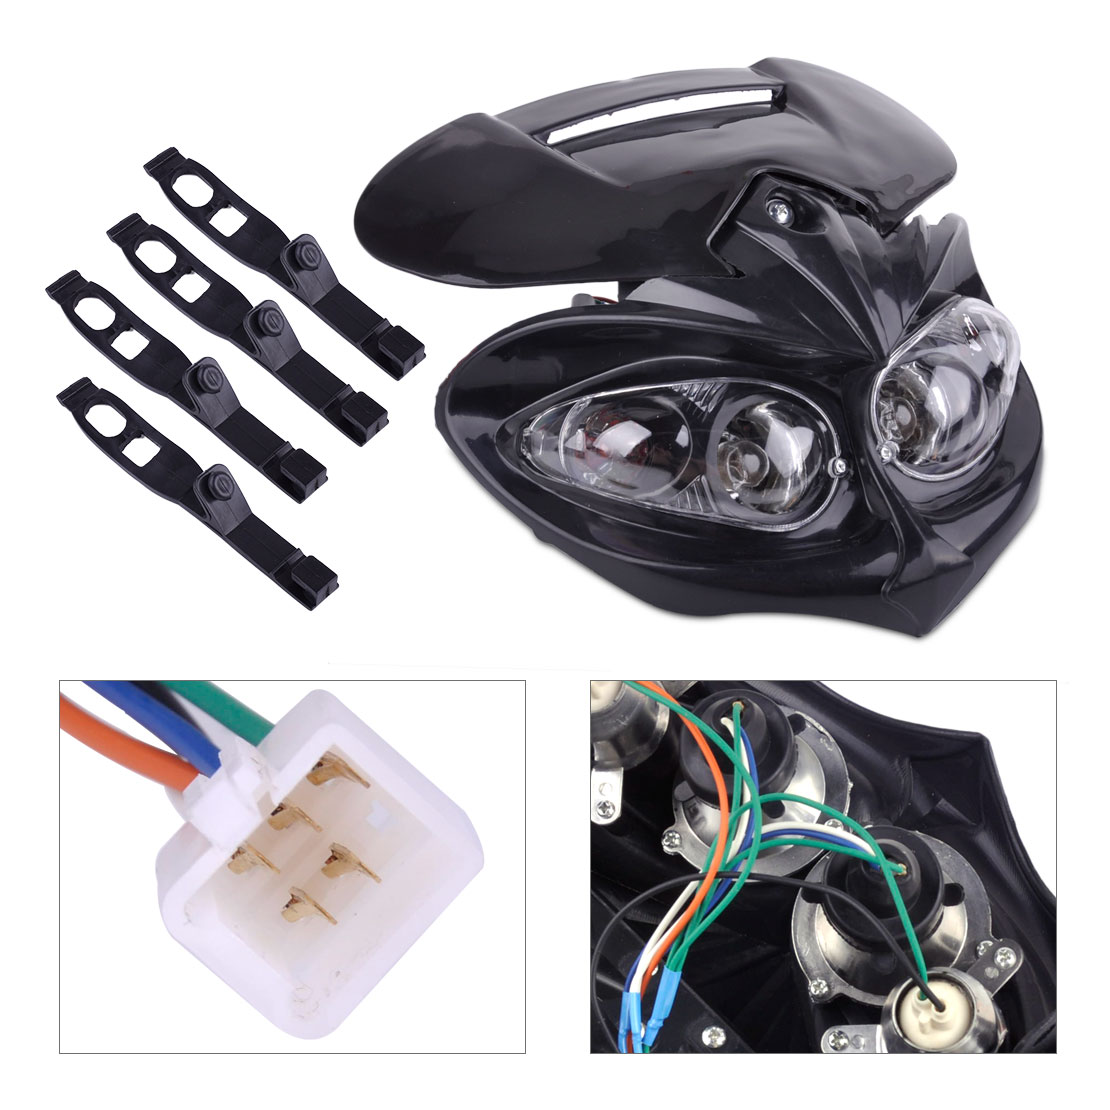 beler On Sale Front Head Dual Sport Light Lamp Fairing with Mounting Strap for Street Fighter Motorcycle Off-Road Street Ran image